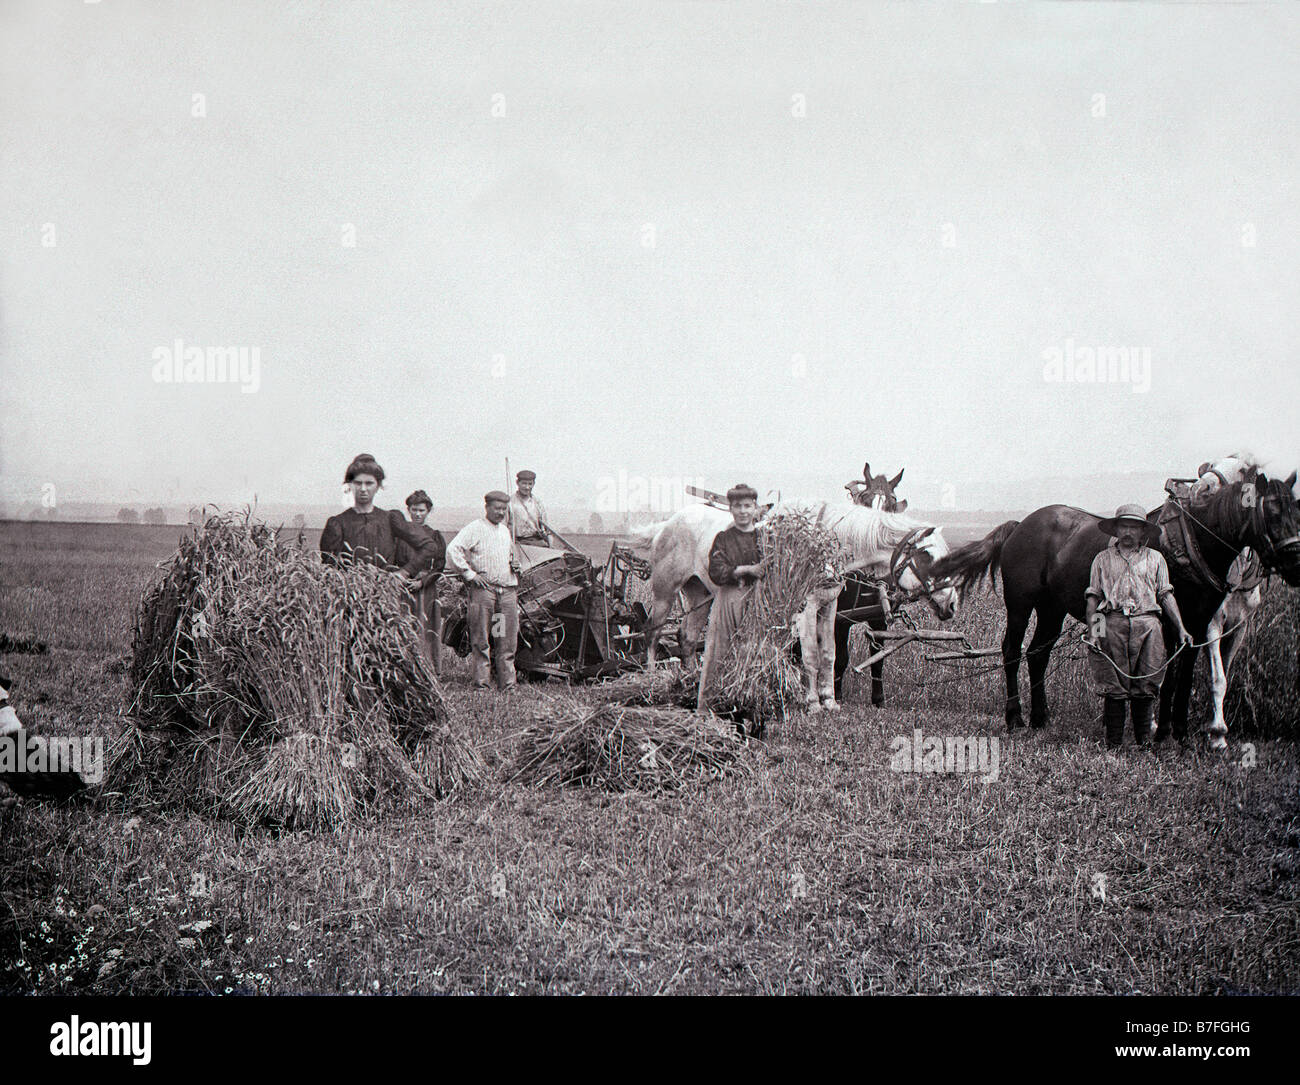 les foins en france vers 1900 Batteuse thresher agricultural machinery agriculture farming haystack working workers - Stock Image